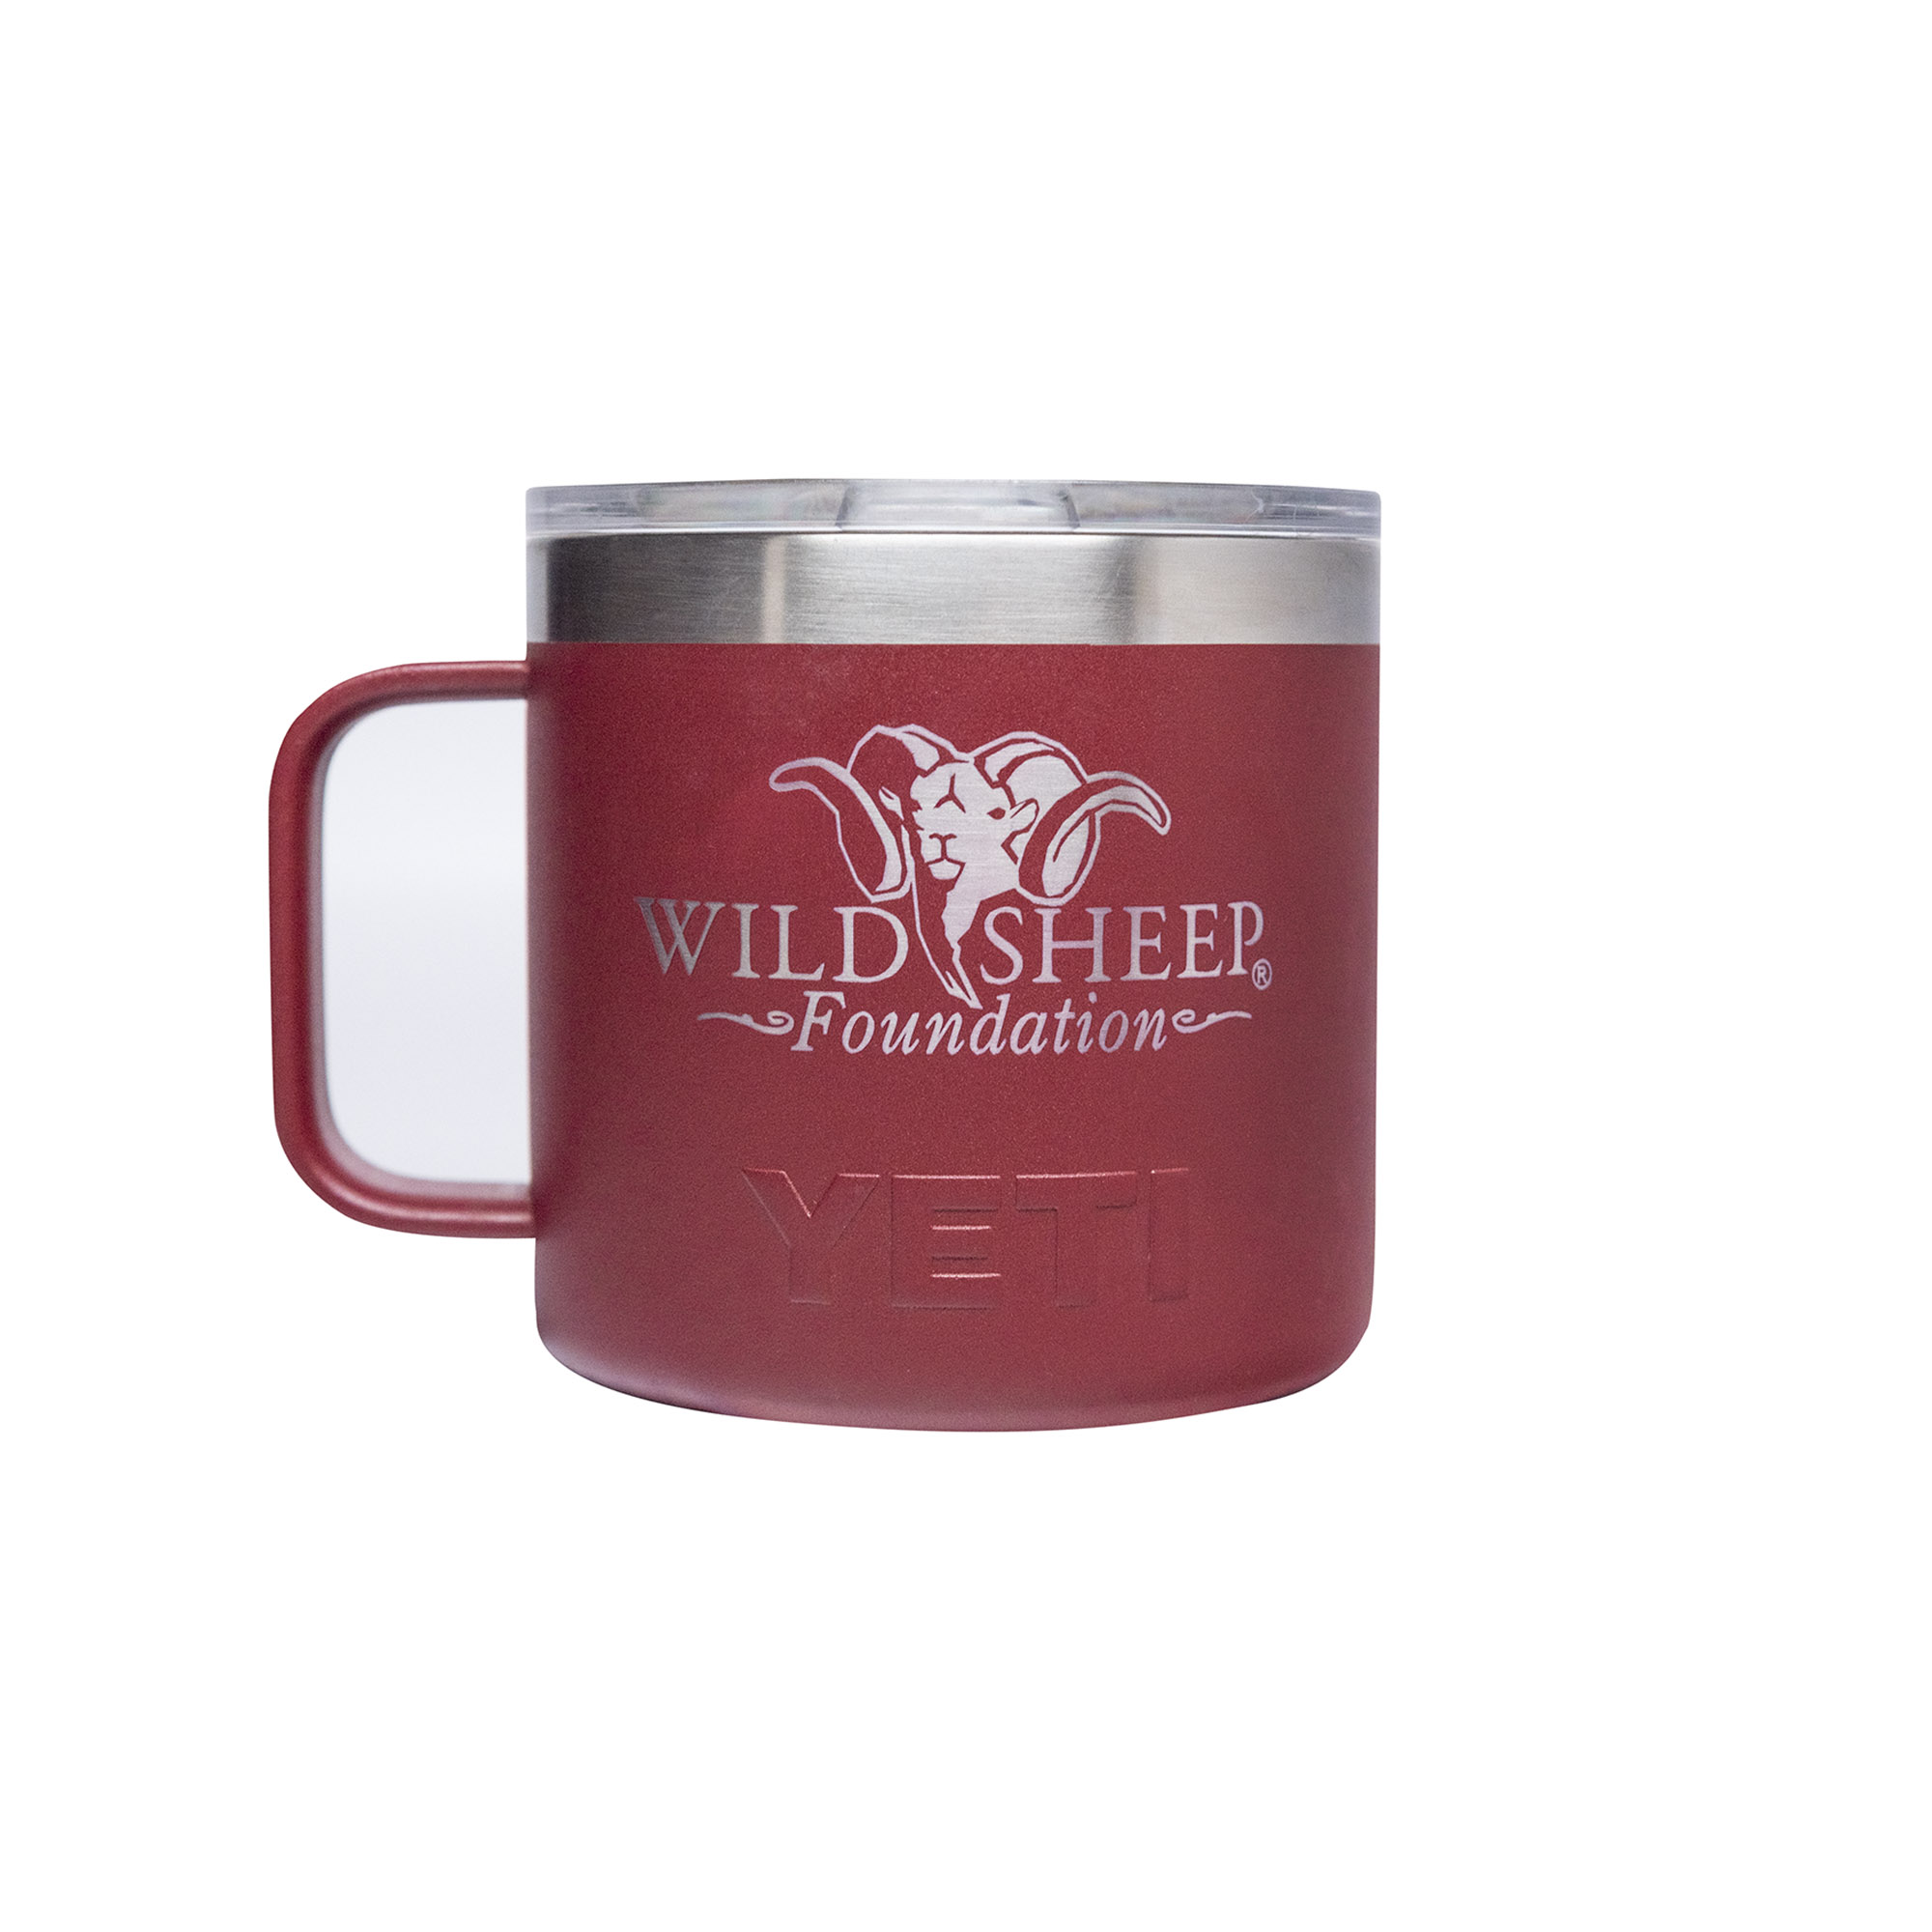 YETI Rambler 14oz Mug - Red